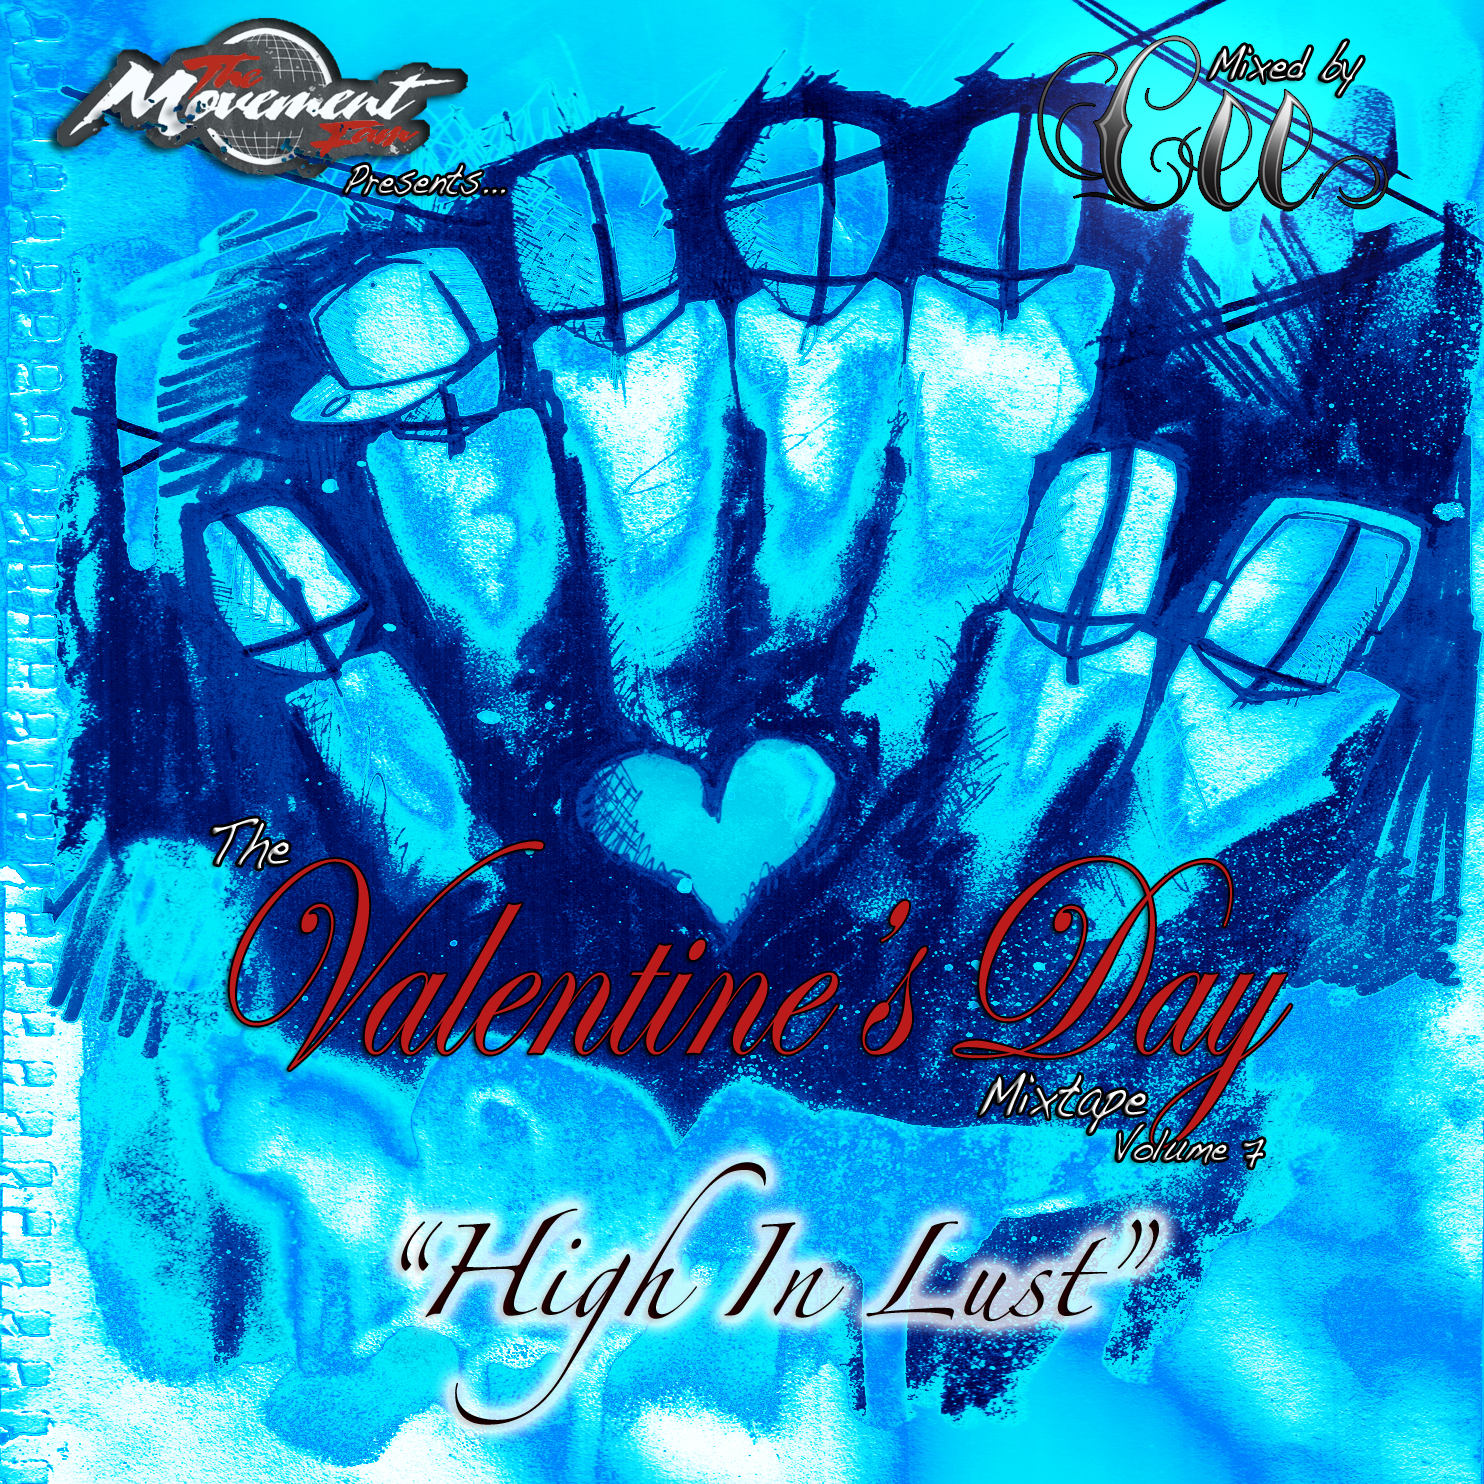 Valentines-Day-Cover-Vol-7-FRONT-FINAL.jpg